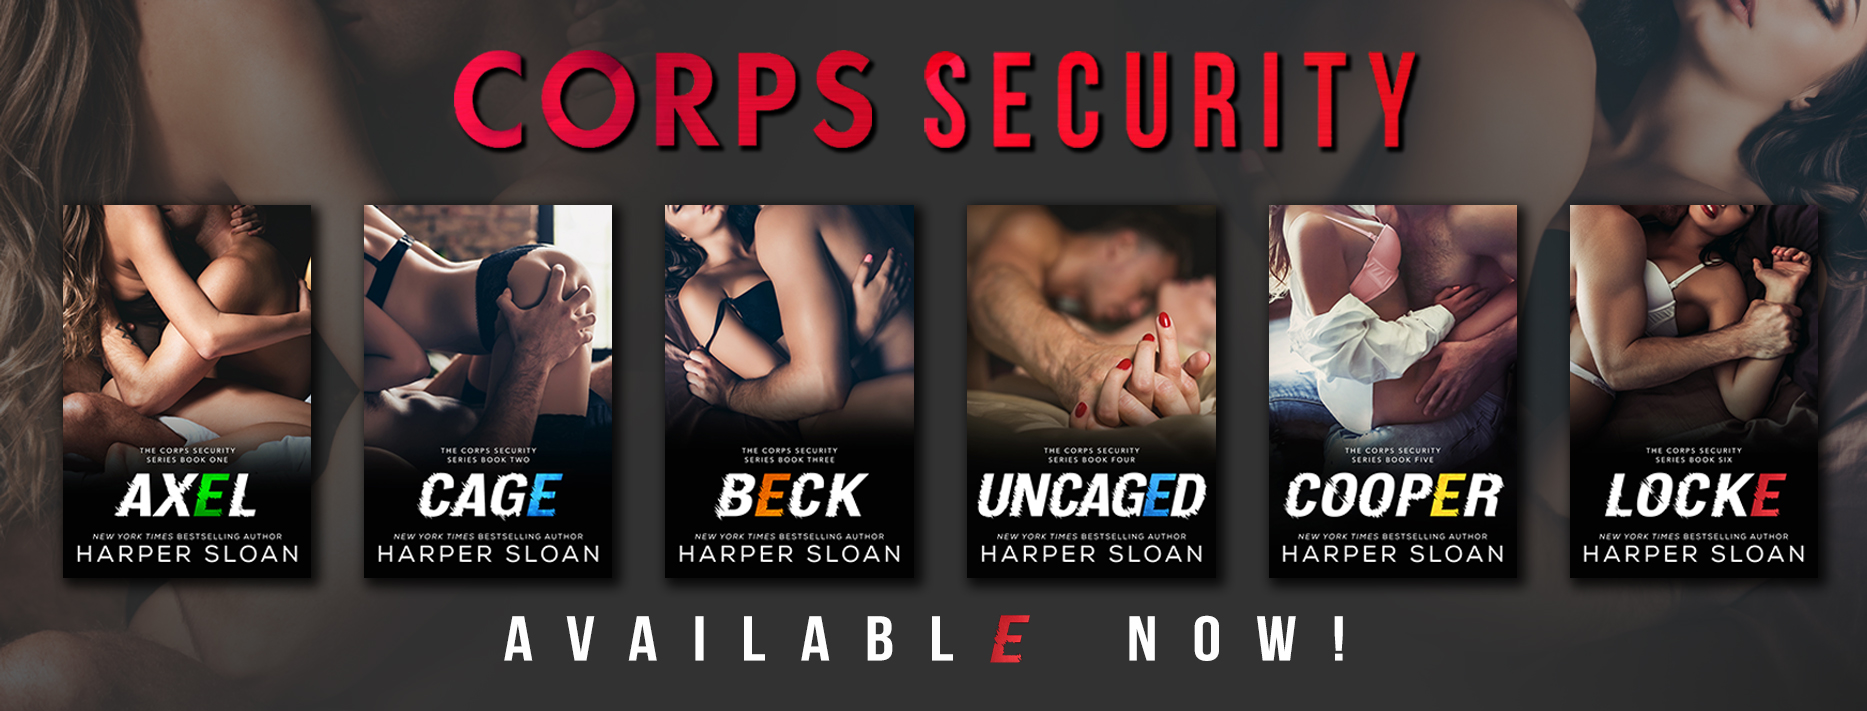 Re-reveal: CORPS Security by Harper Sloan